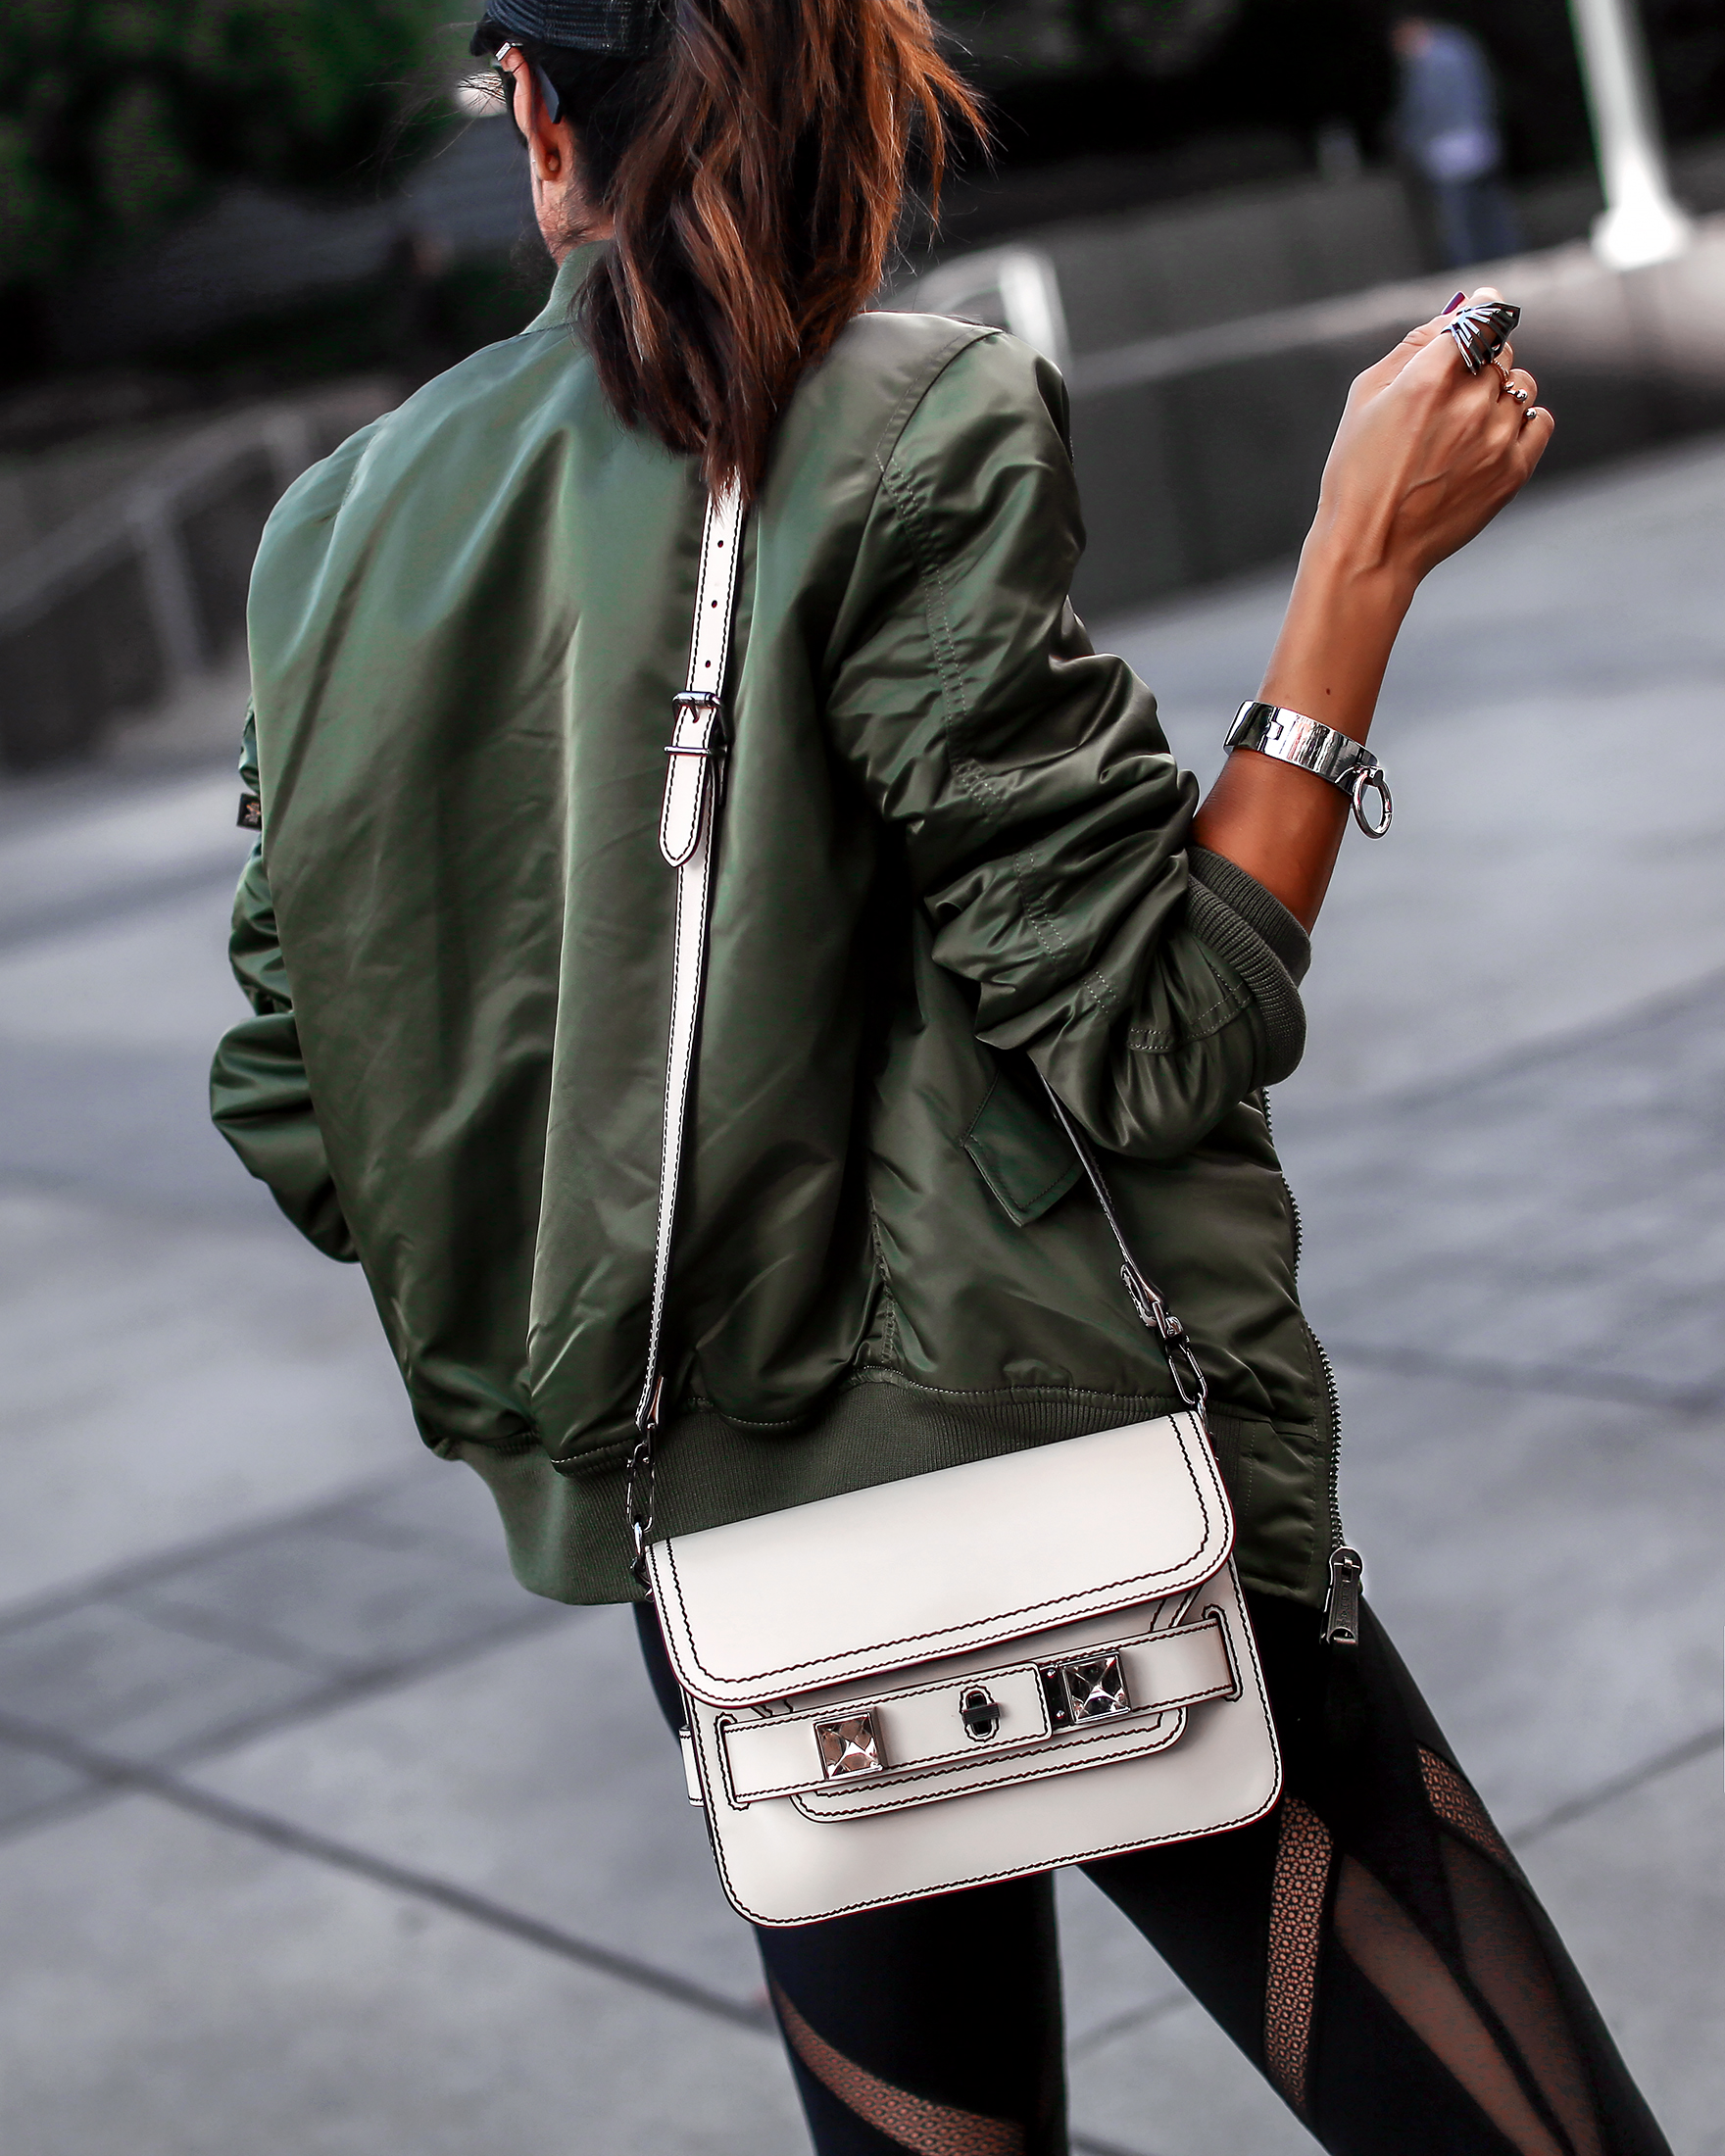 Brunette Woman Bomber Jacket and White Purse